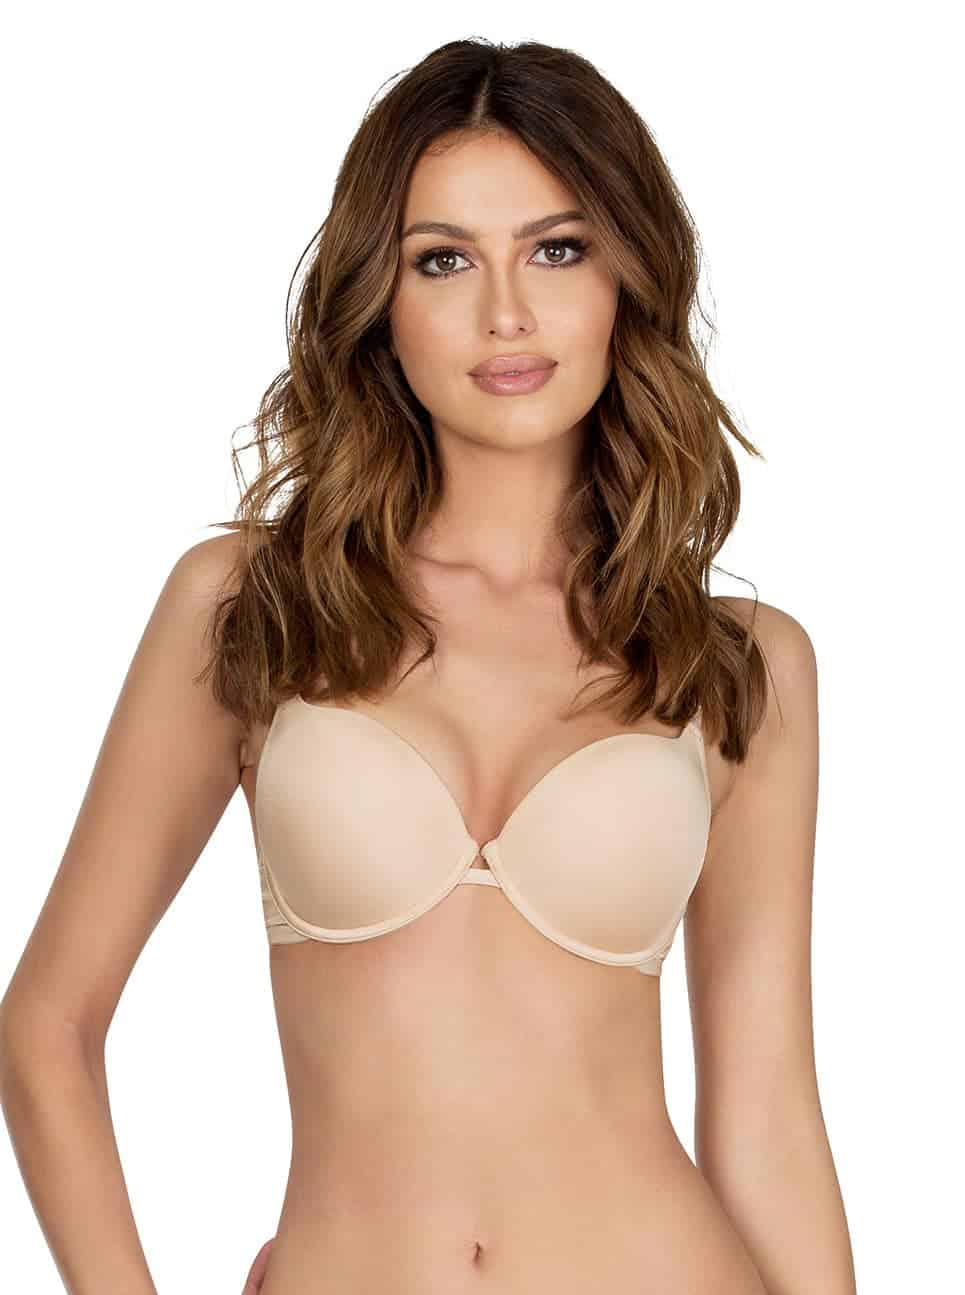 Lynn SuperPush UpBraP13021 Nude Front - Lynn Super Push-up Bra - European Nude - P13021